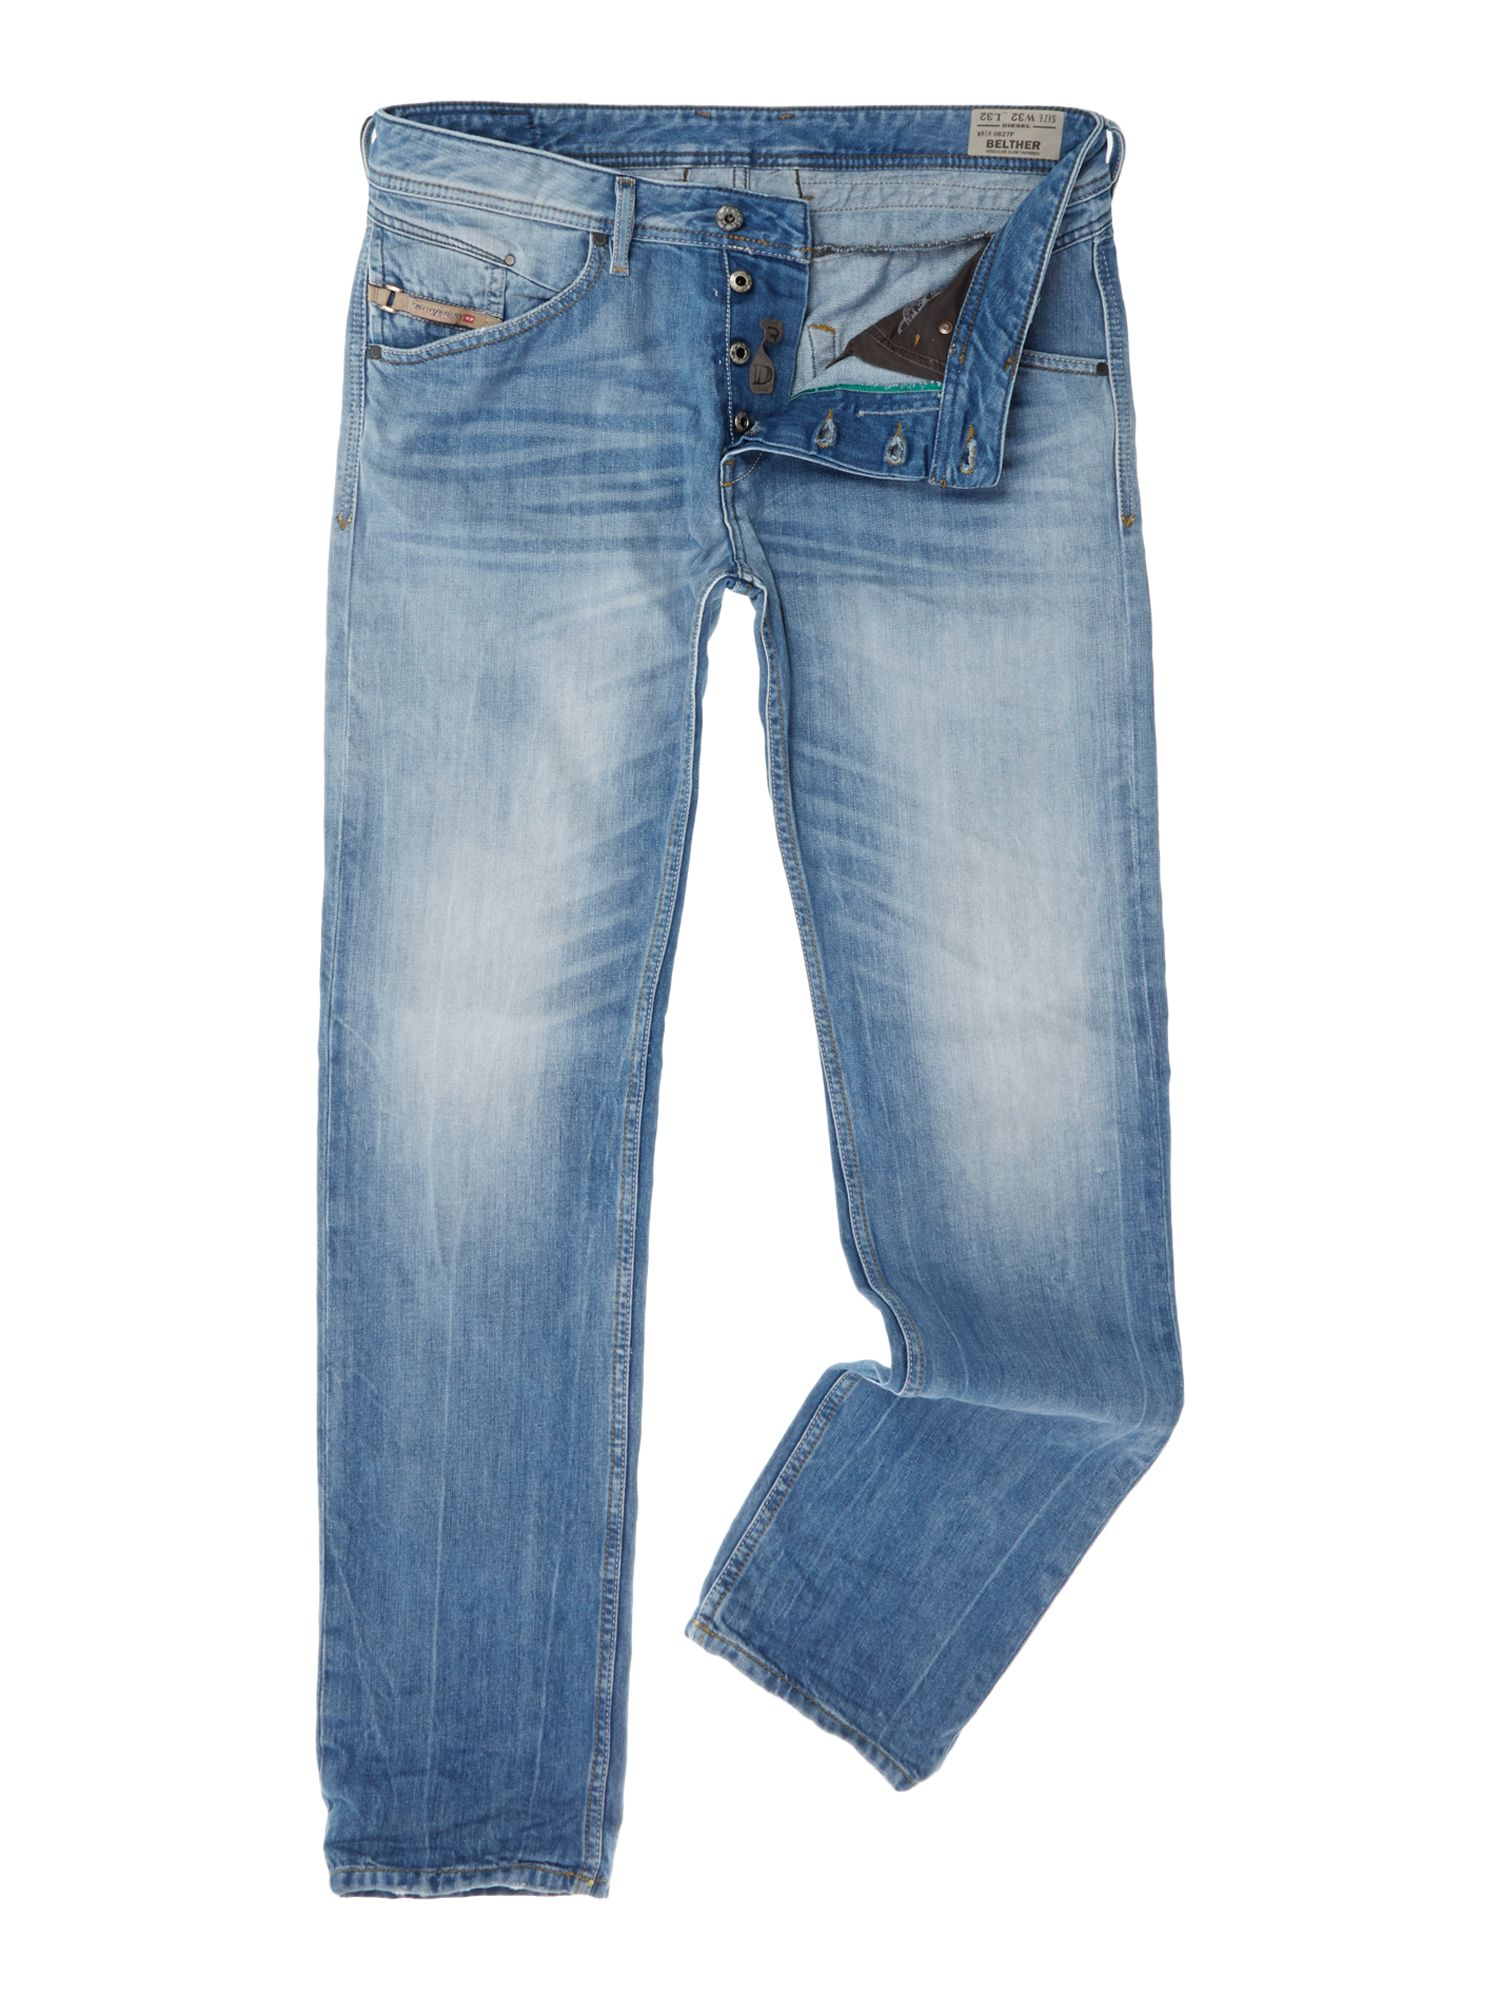 Belther 0827F tapered fit jean